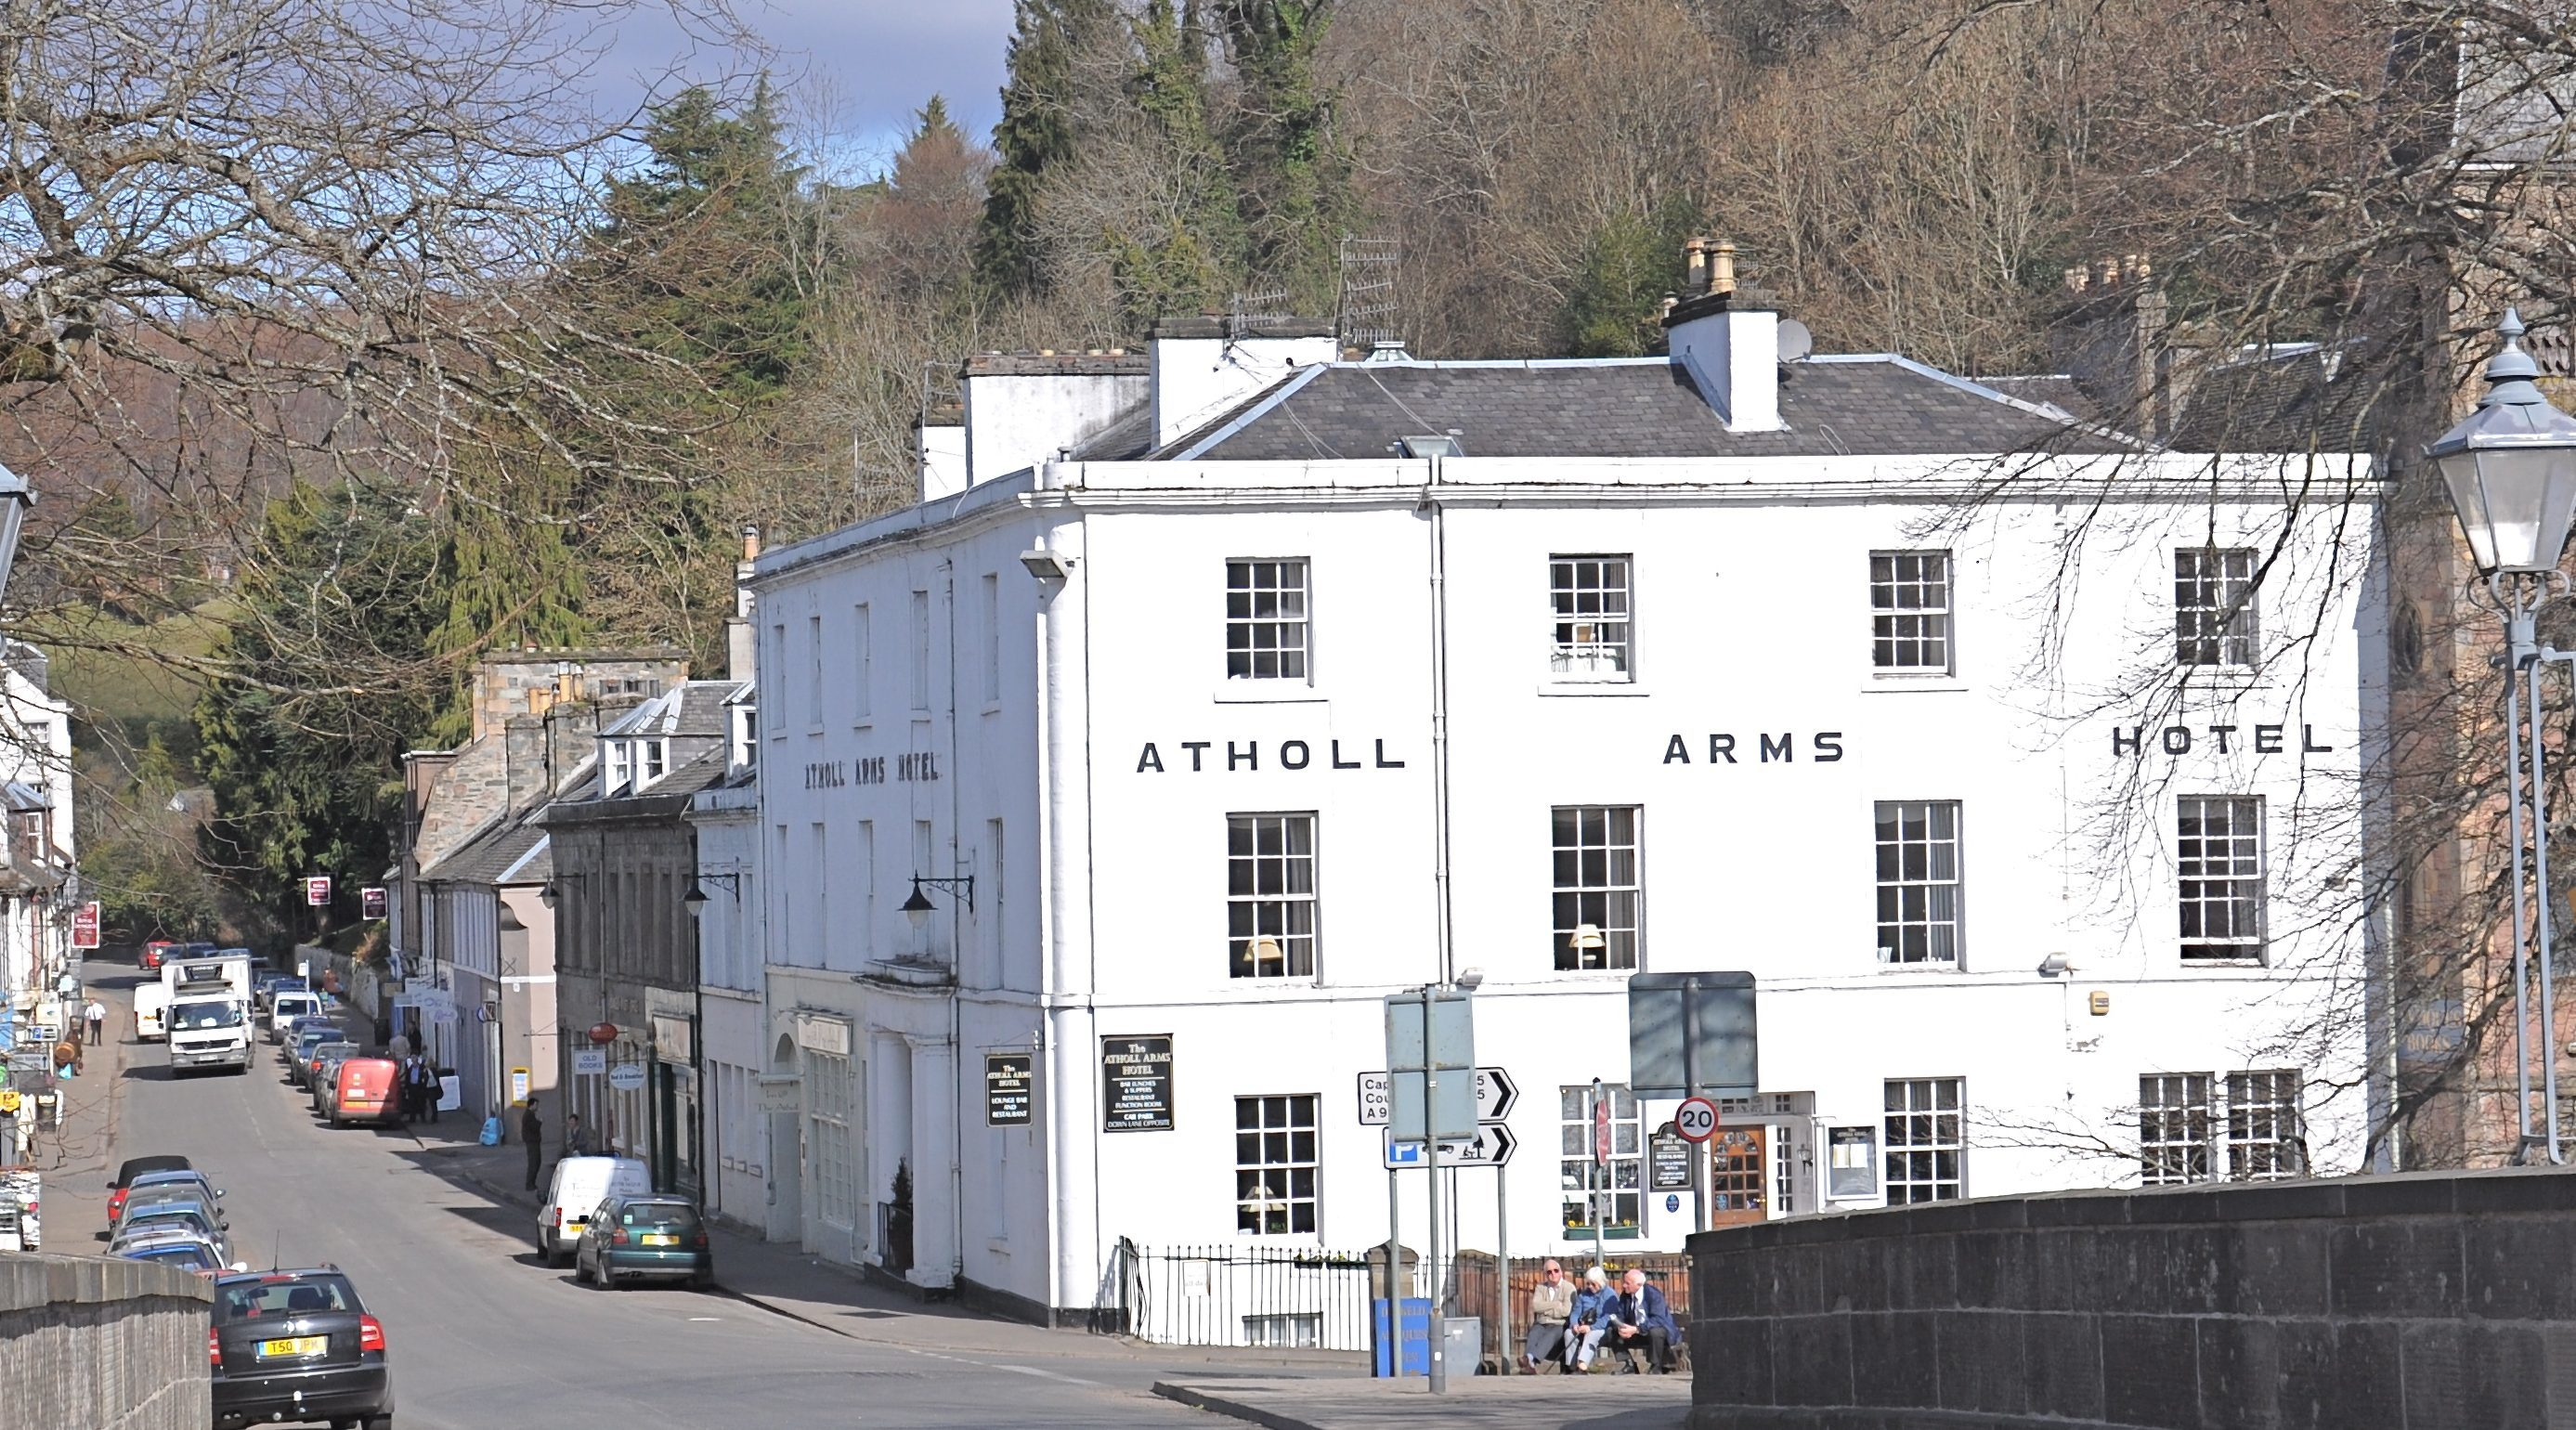 Enjoying a fine location —the Atholl Arms Hotel in Dunkeld.